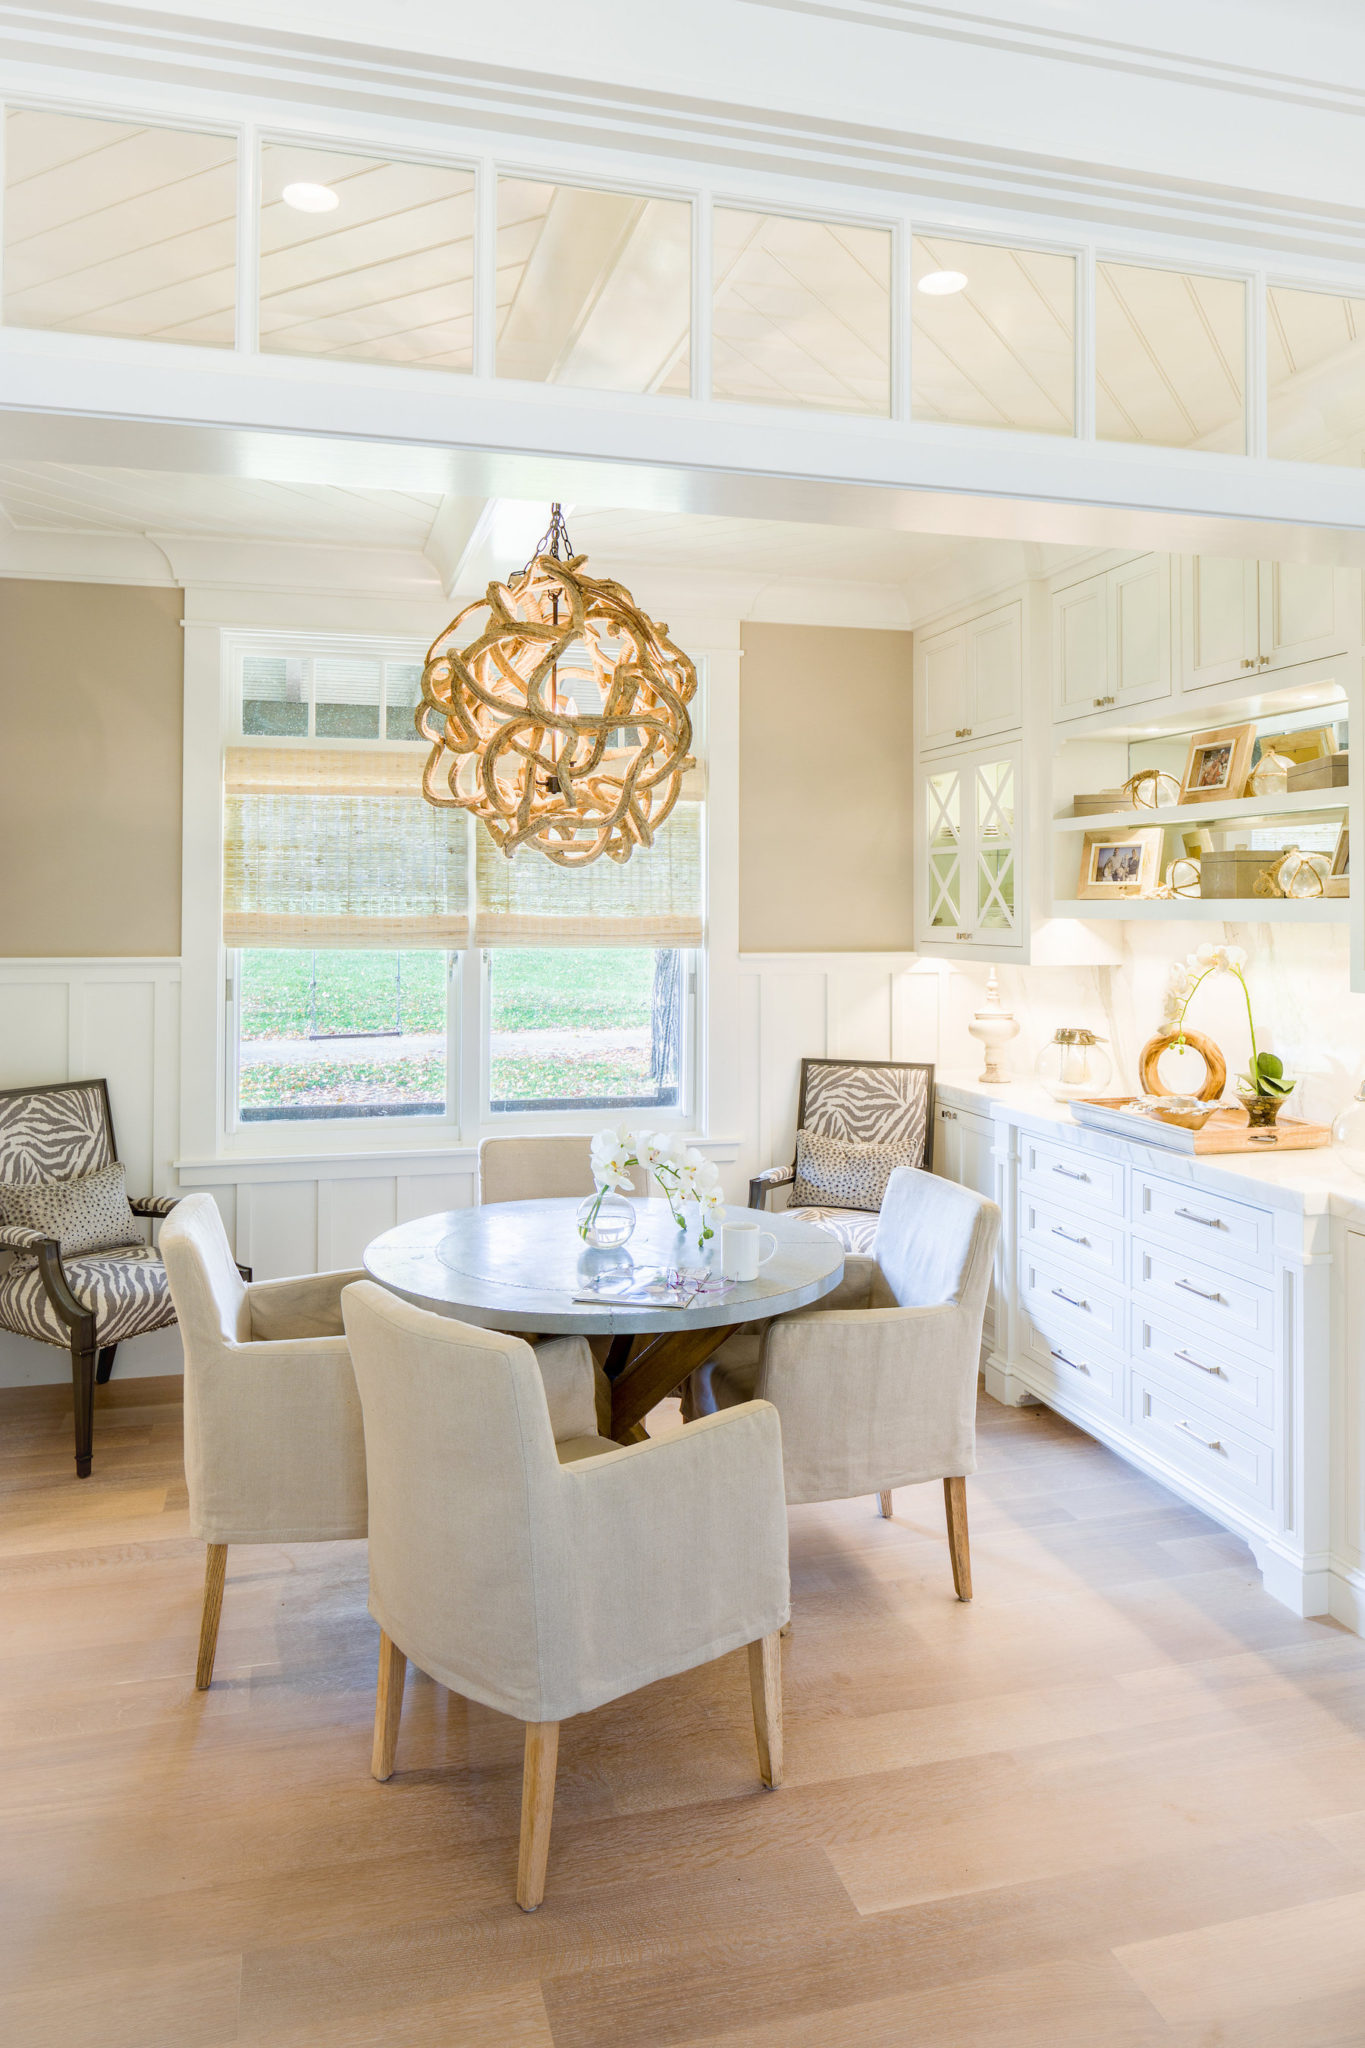 Annapolis. MD Residence - Architectural Design Studios 6